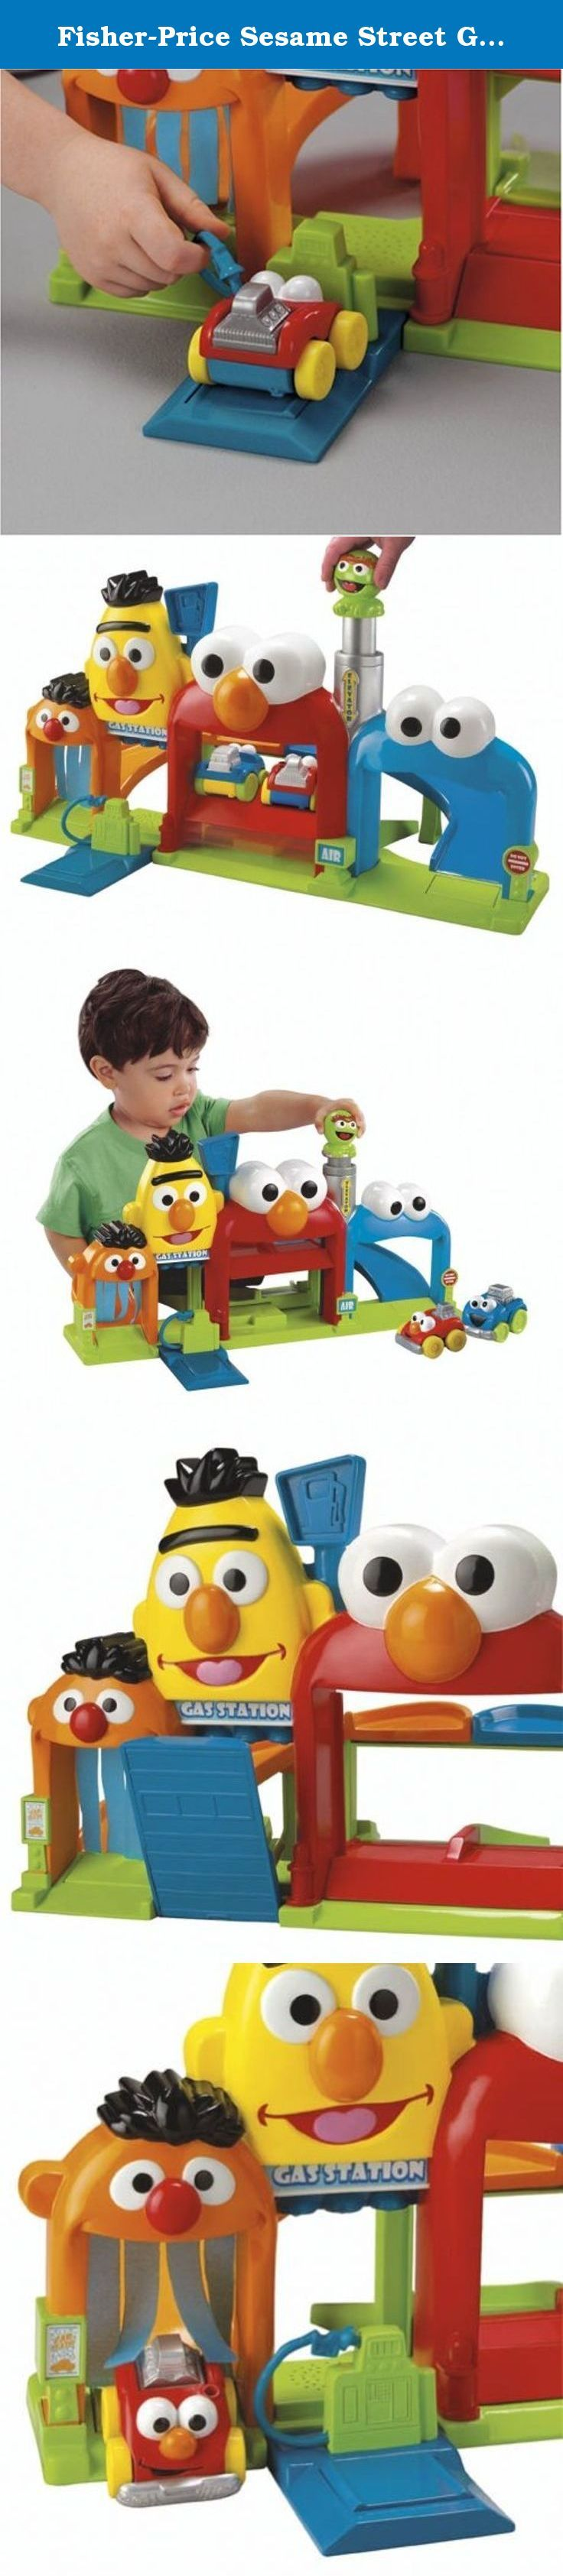 Fisher-Price Sesame Street Giggle 'N Go Garage. Four familiar friends invite preschoolers to explore this adorable garage.